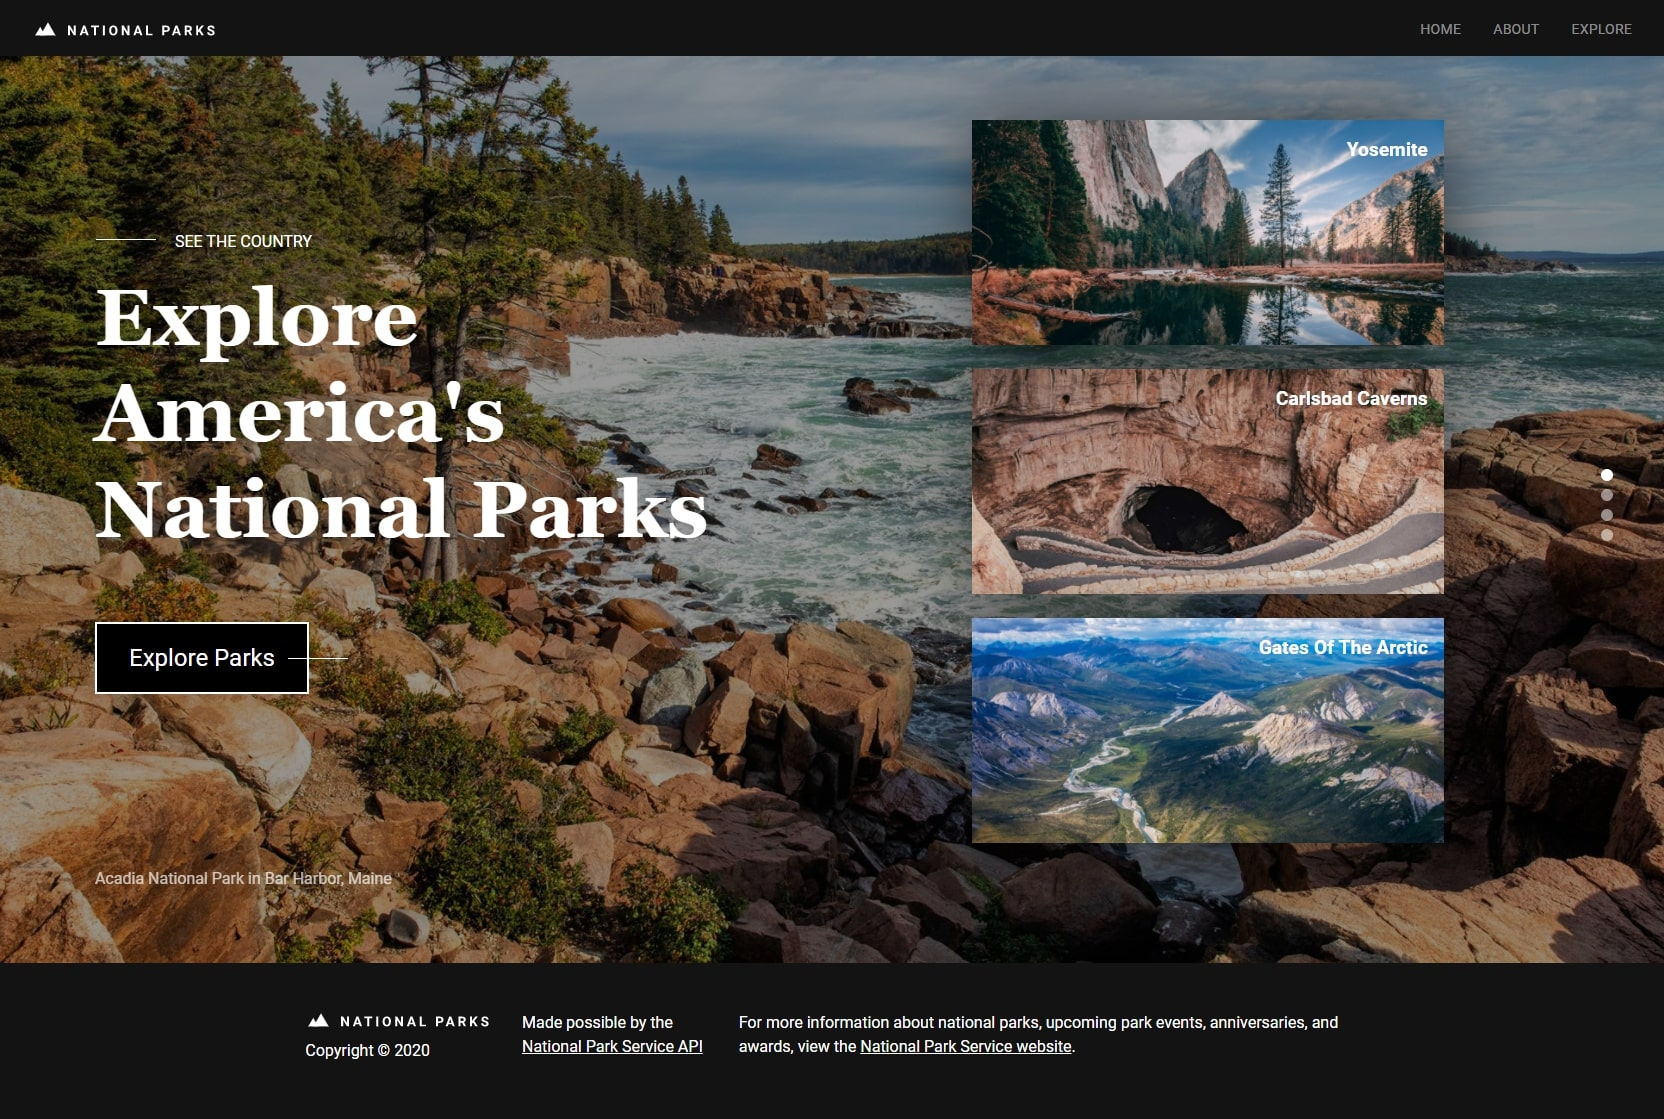 National Parks - Home